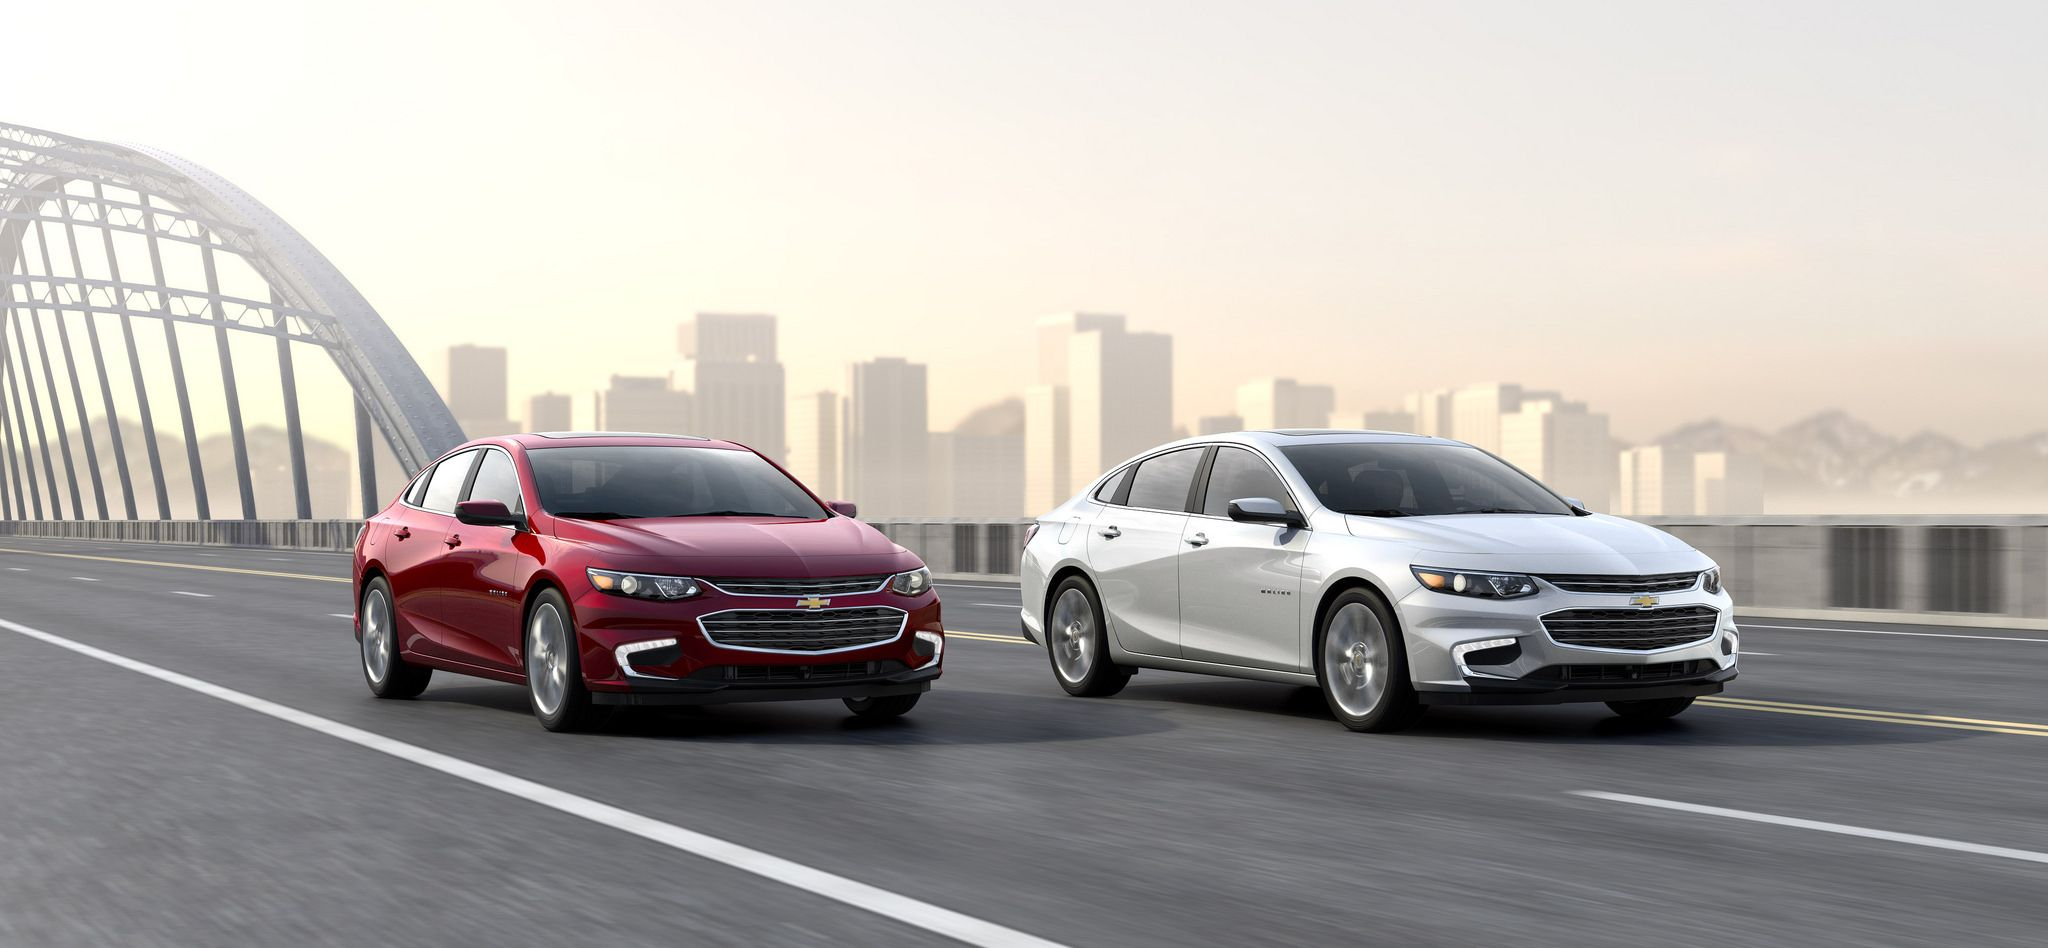 Going Green The 2016 Chevrolet Malibu Hybrid Malibu Hybrid